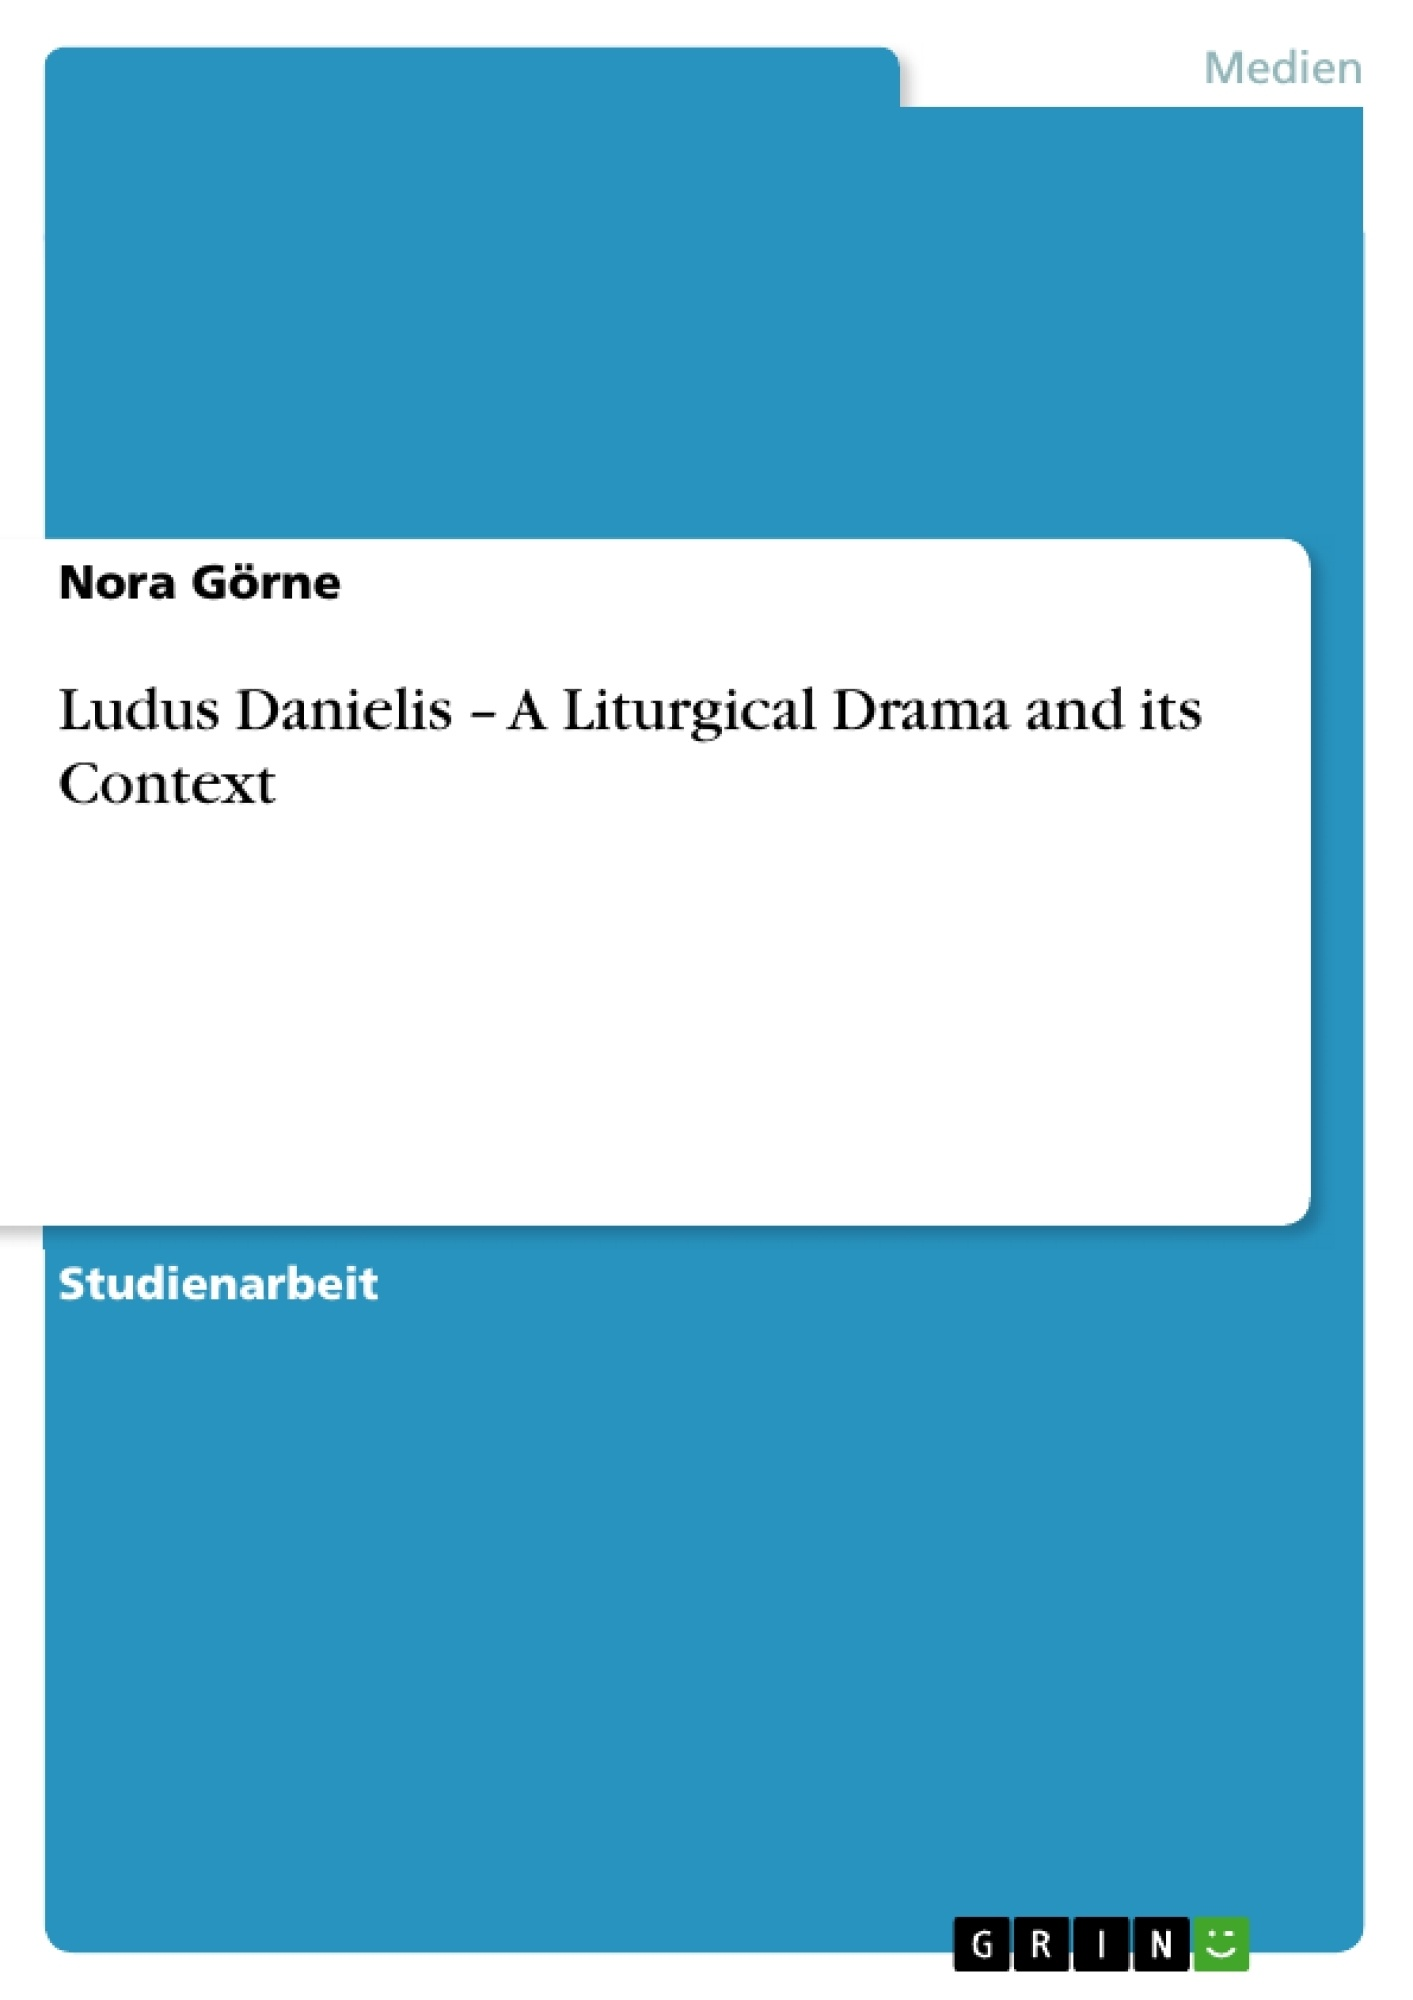 Titel: Ludus Danielis – A Liturgical Drama and its Context